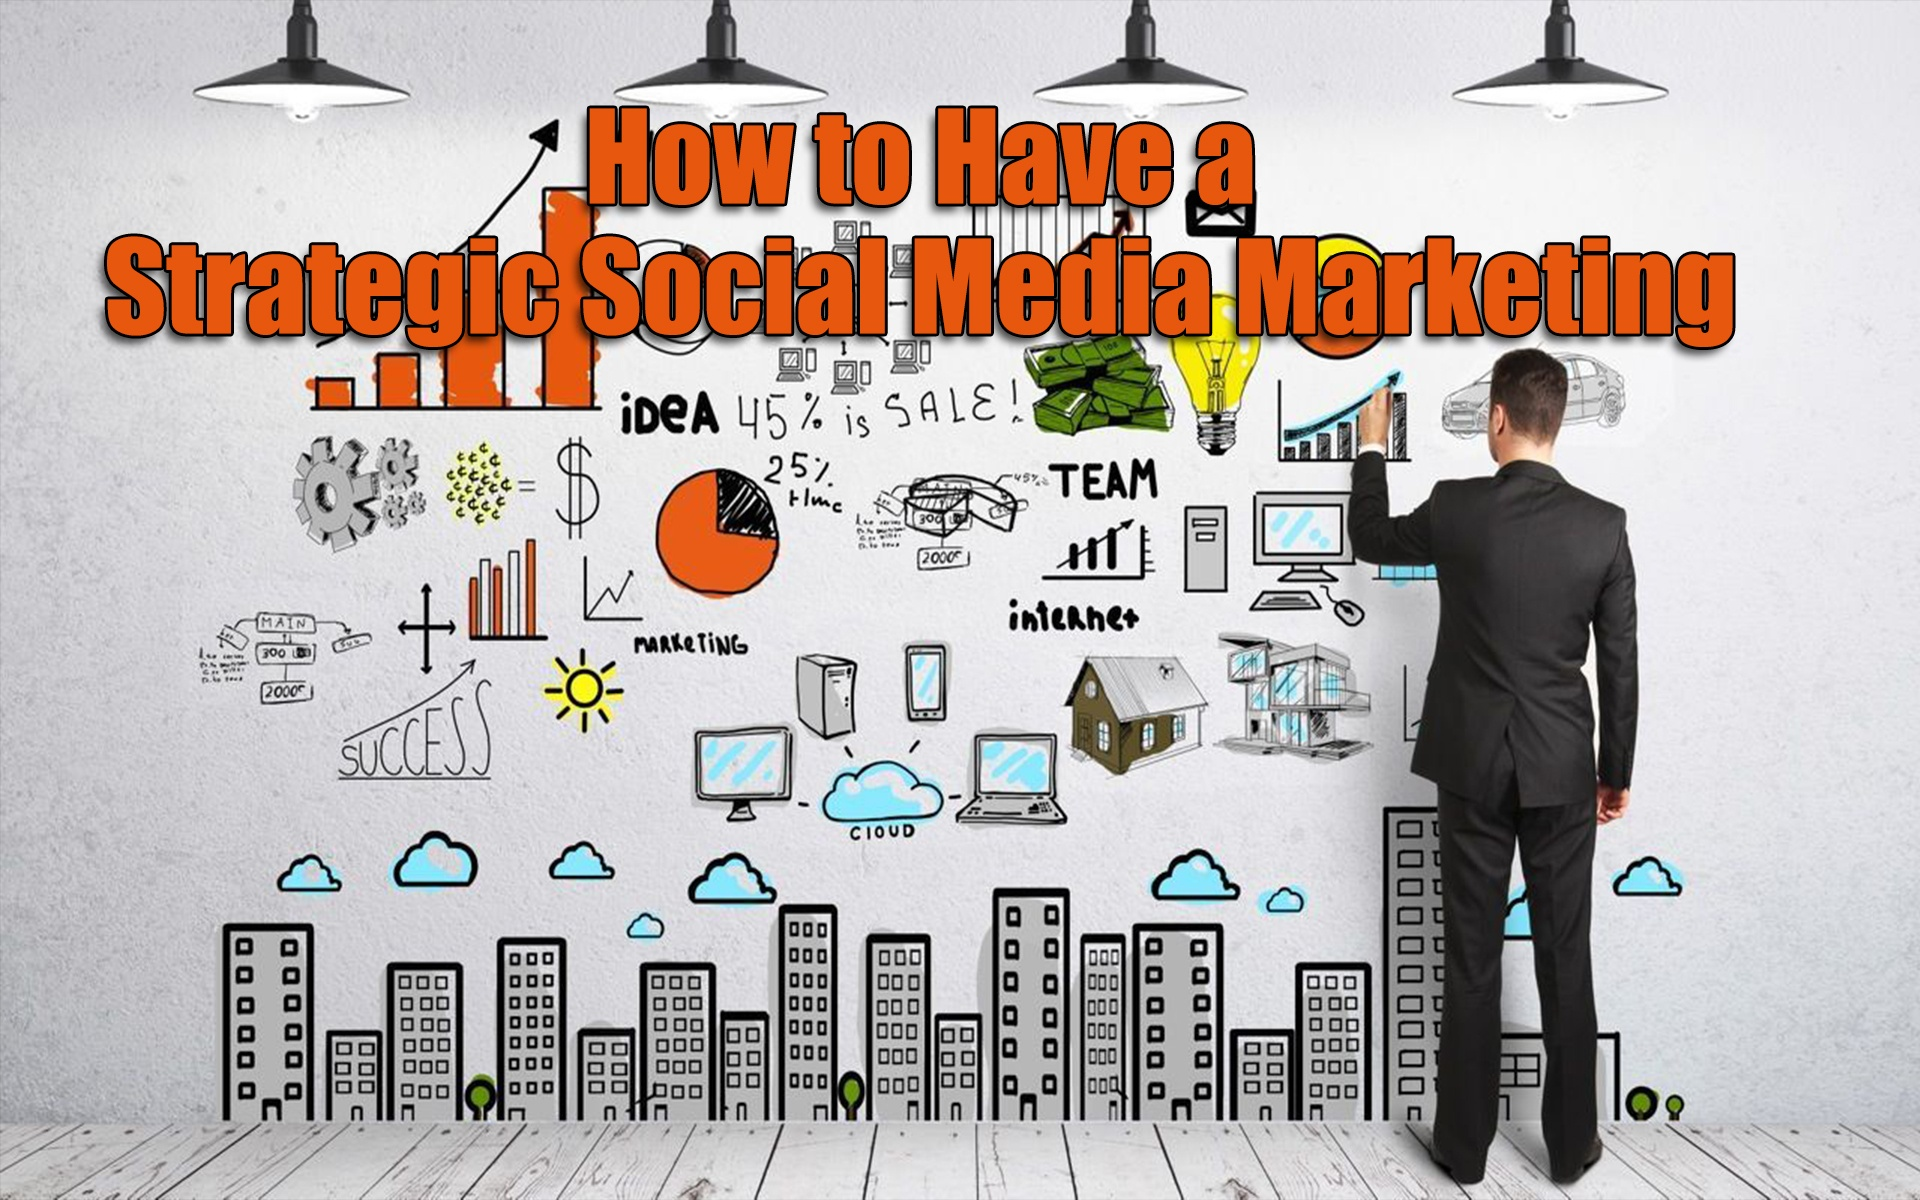 How to Have a Strategic Social Media Marketing